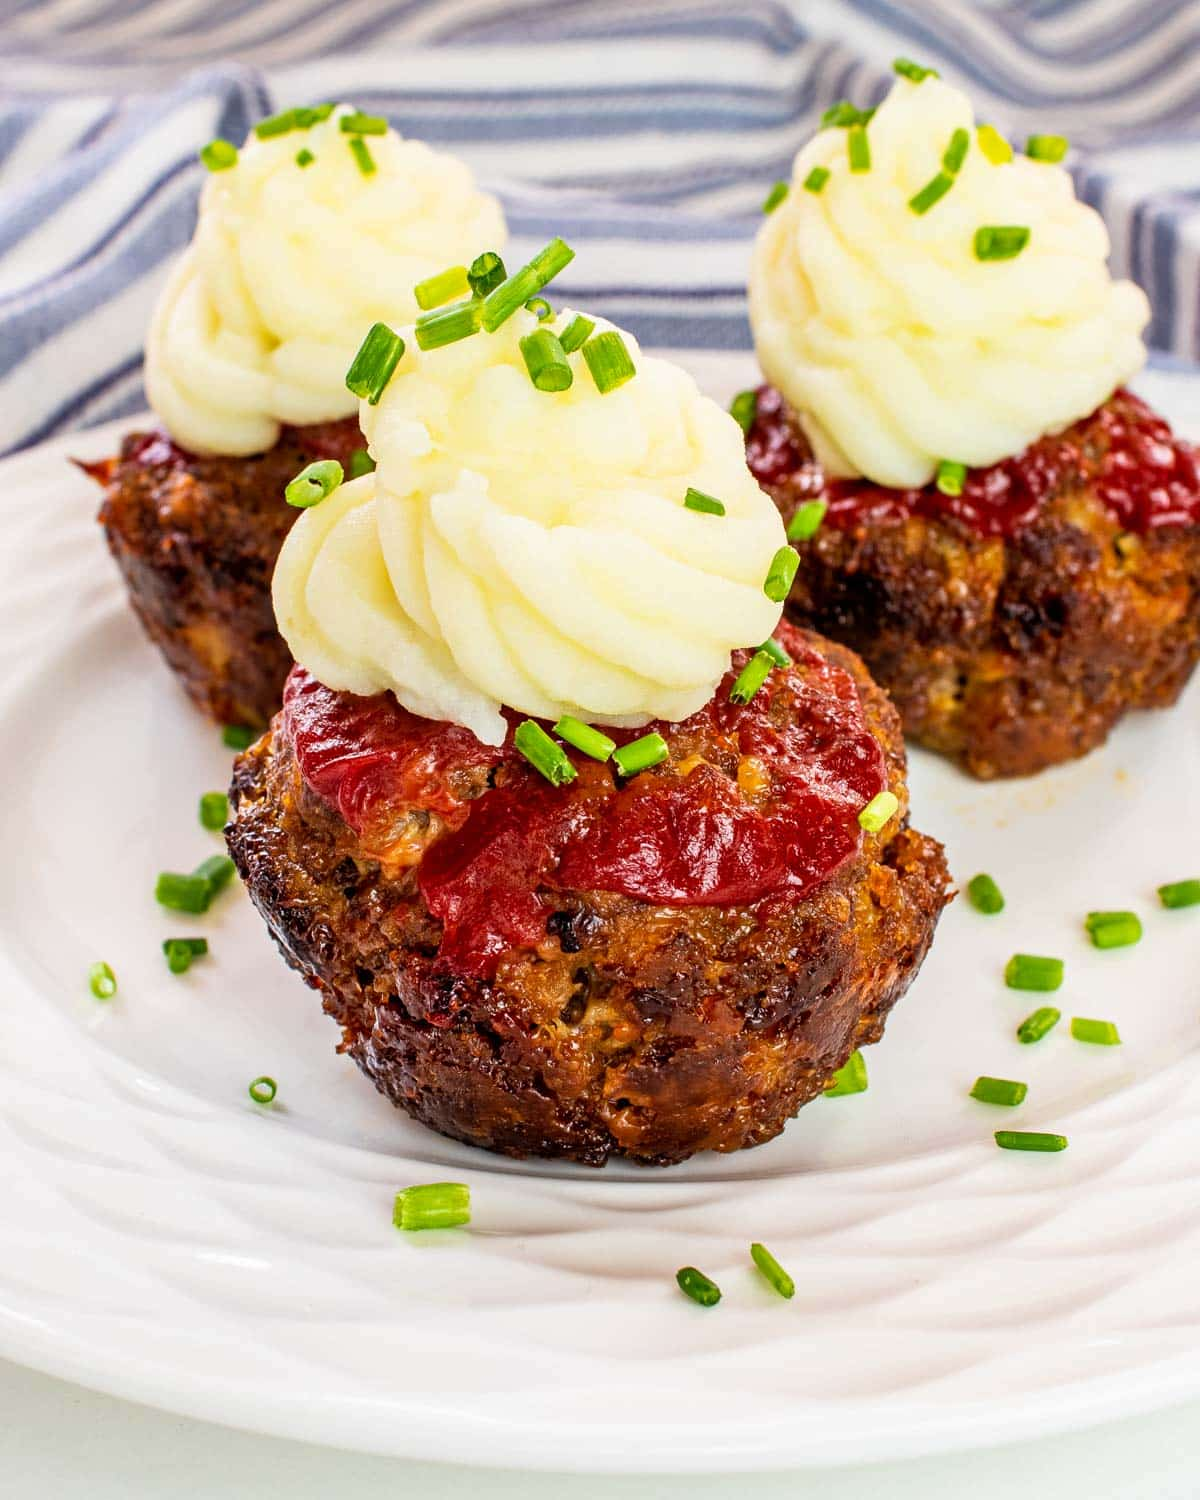 3 meatloaf muffins on a plate topped with mashed potatoes and ketchup.